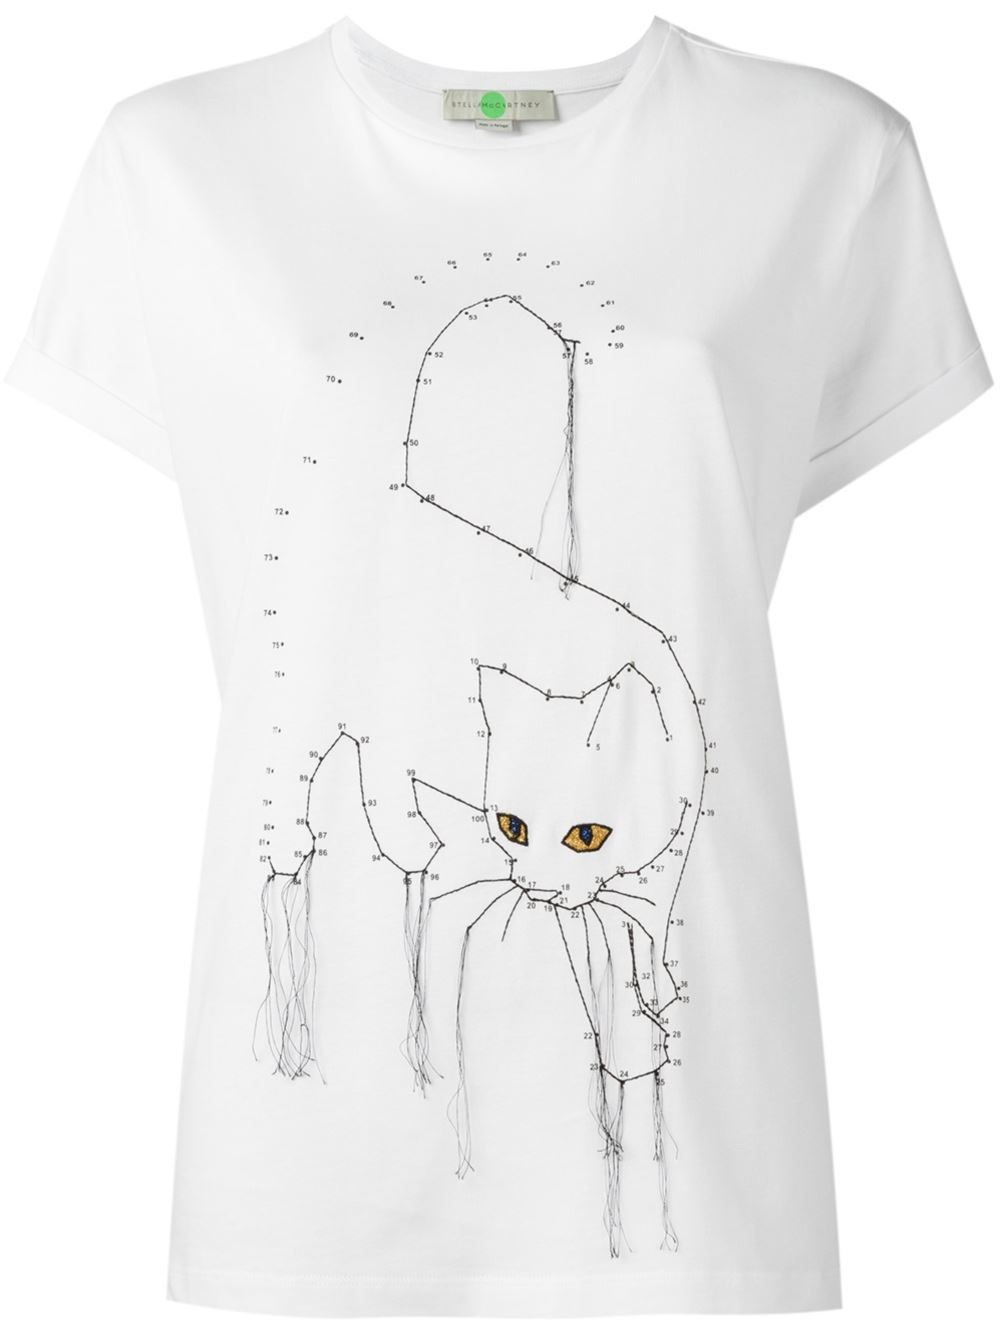 Stella mccartney embroidered cat t shirt in black white for Stella mccartney t shirt